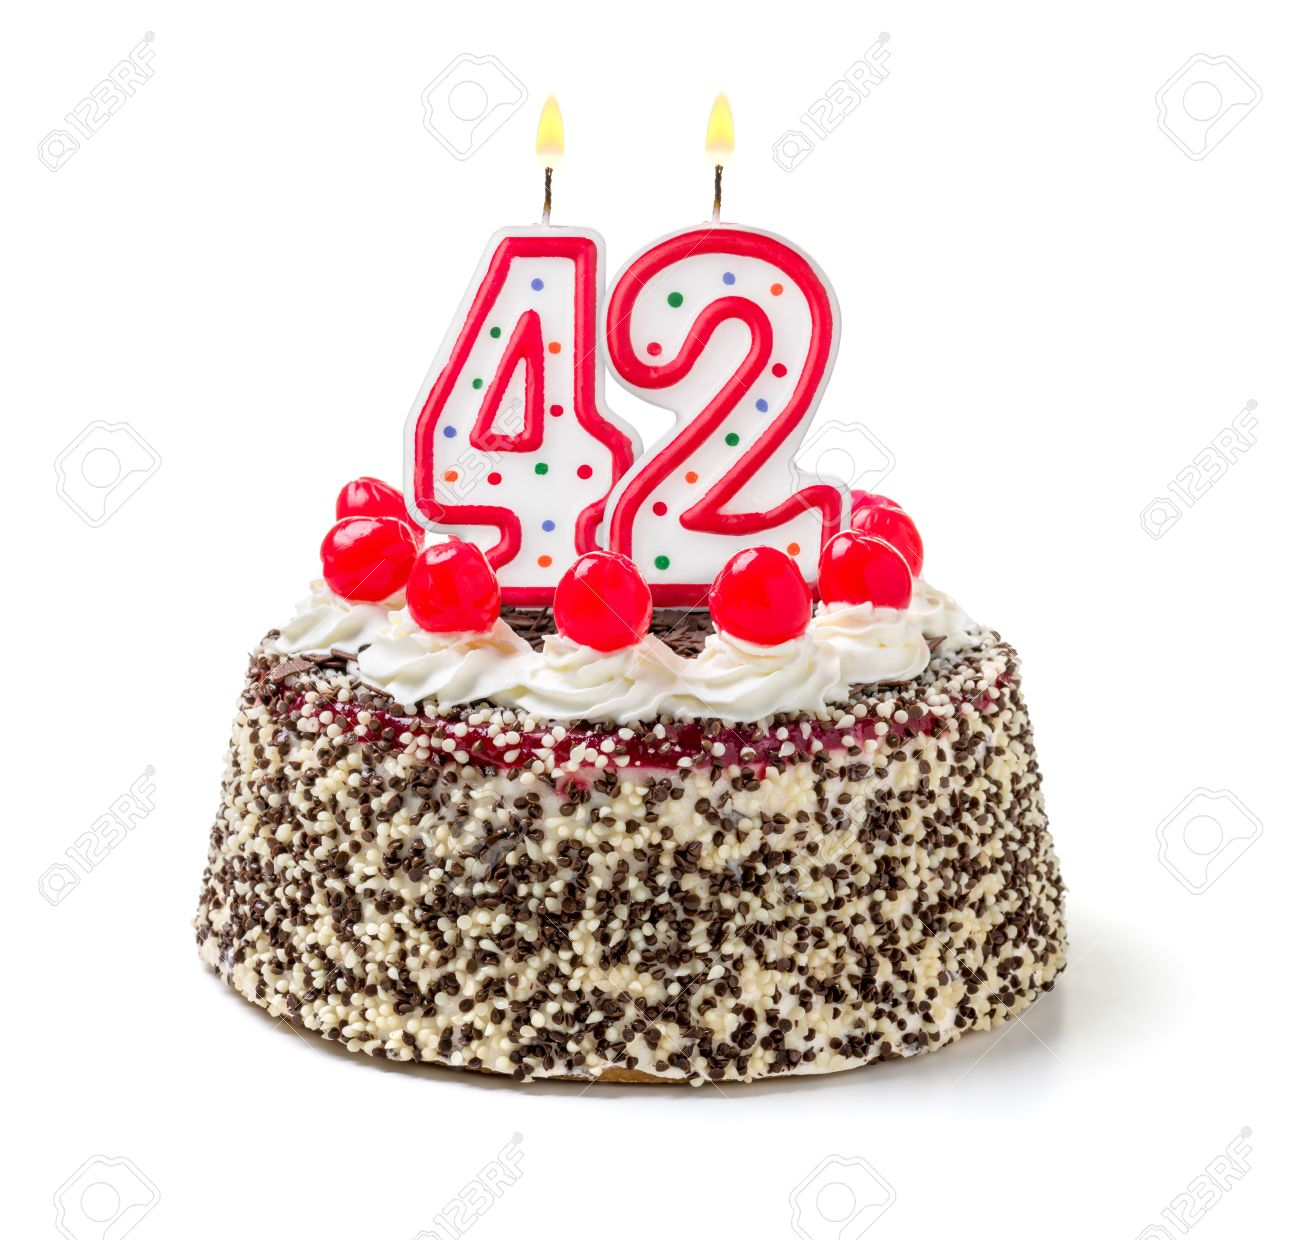 Wondrous Birthday Cake With Burning Candle Number 42 Stock Photo Picture Funny Birthday Cards Online Fluifree Goldxyz